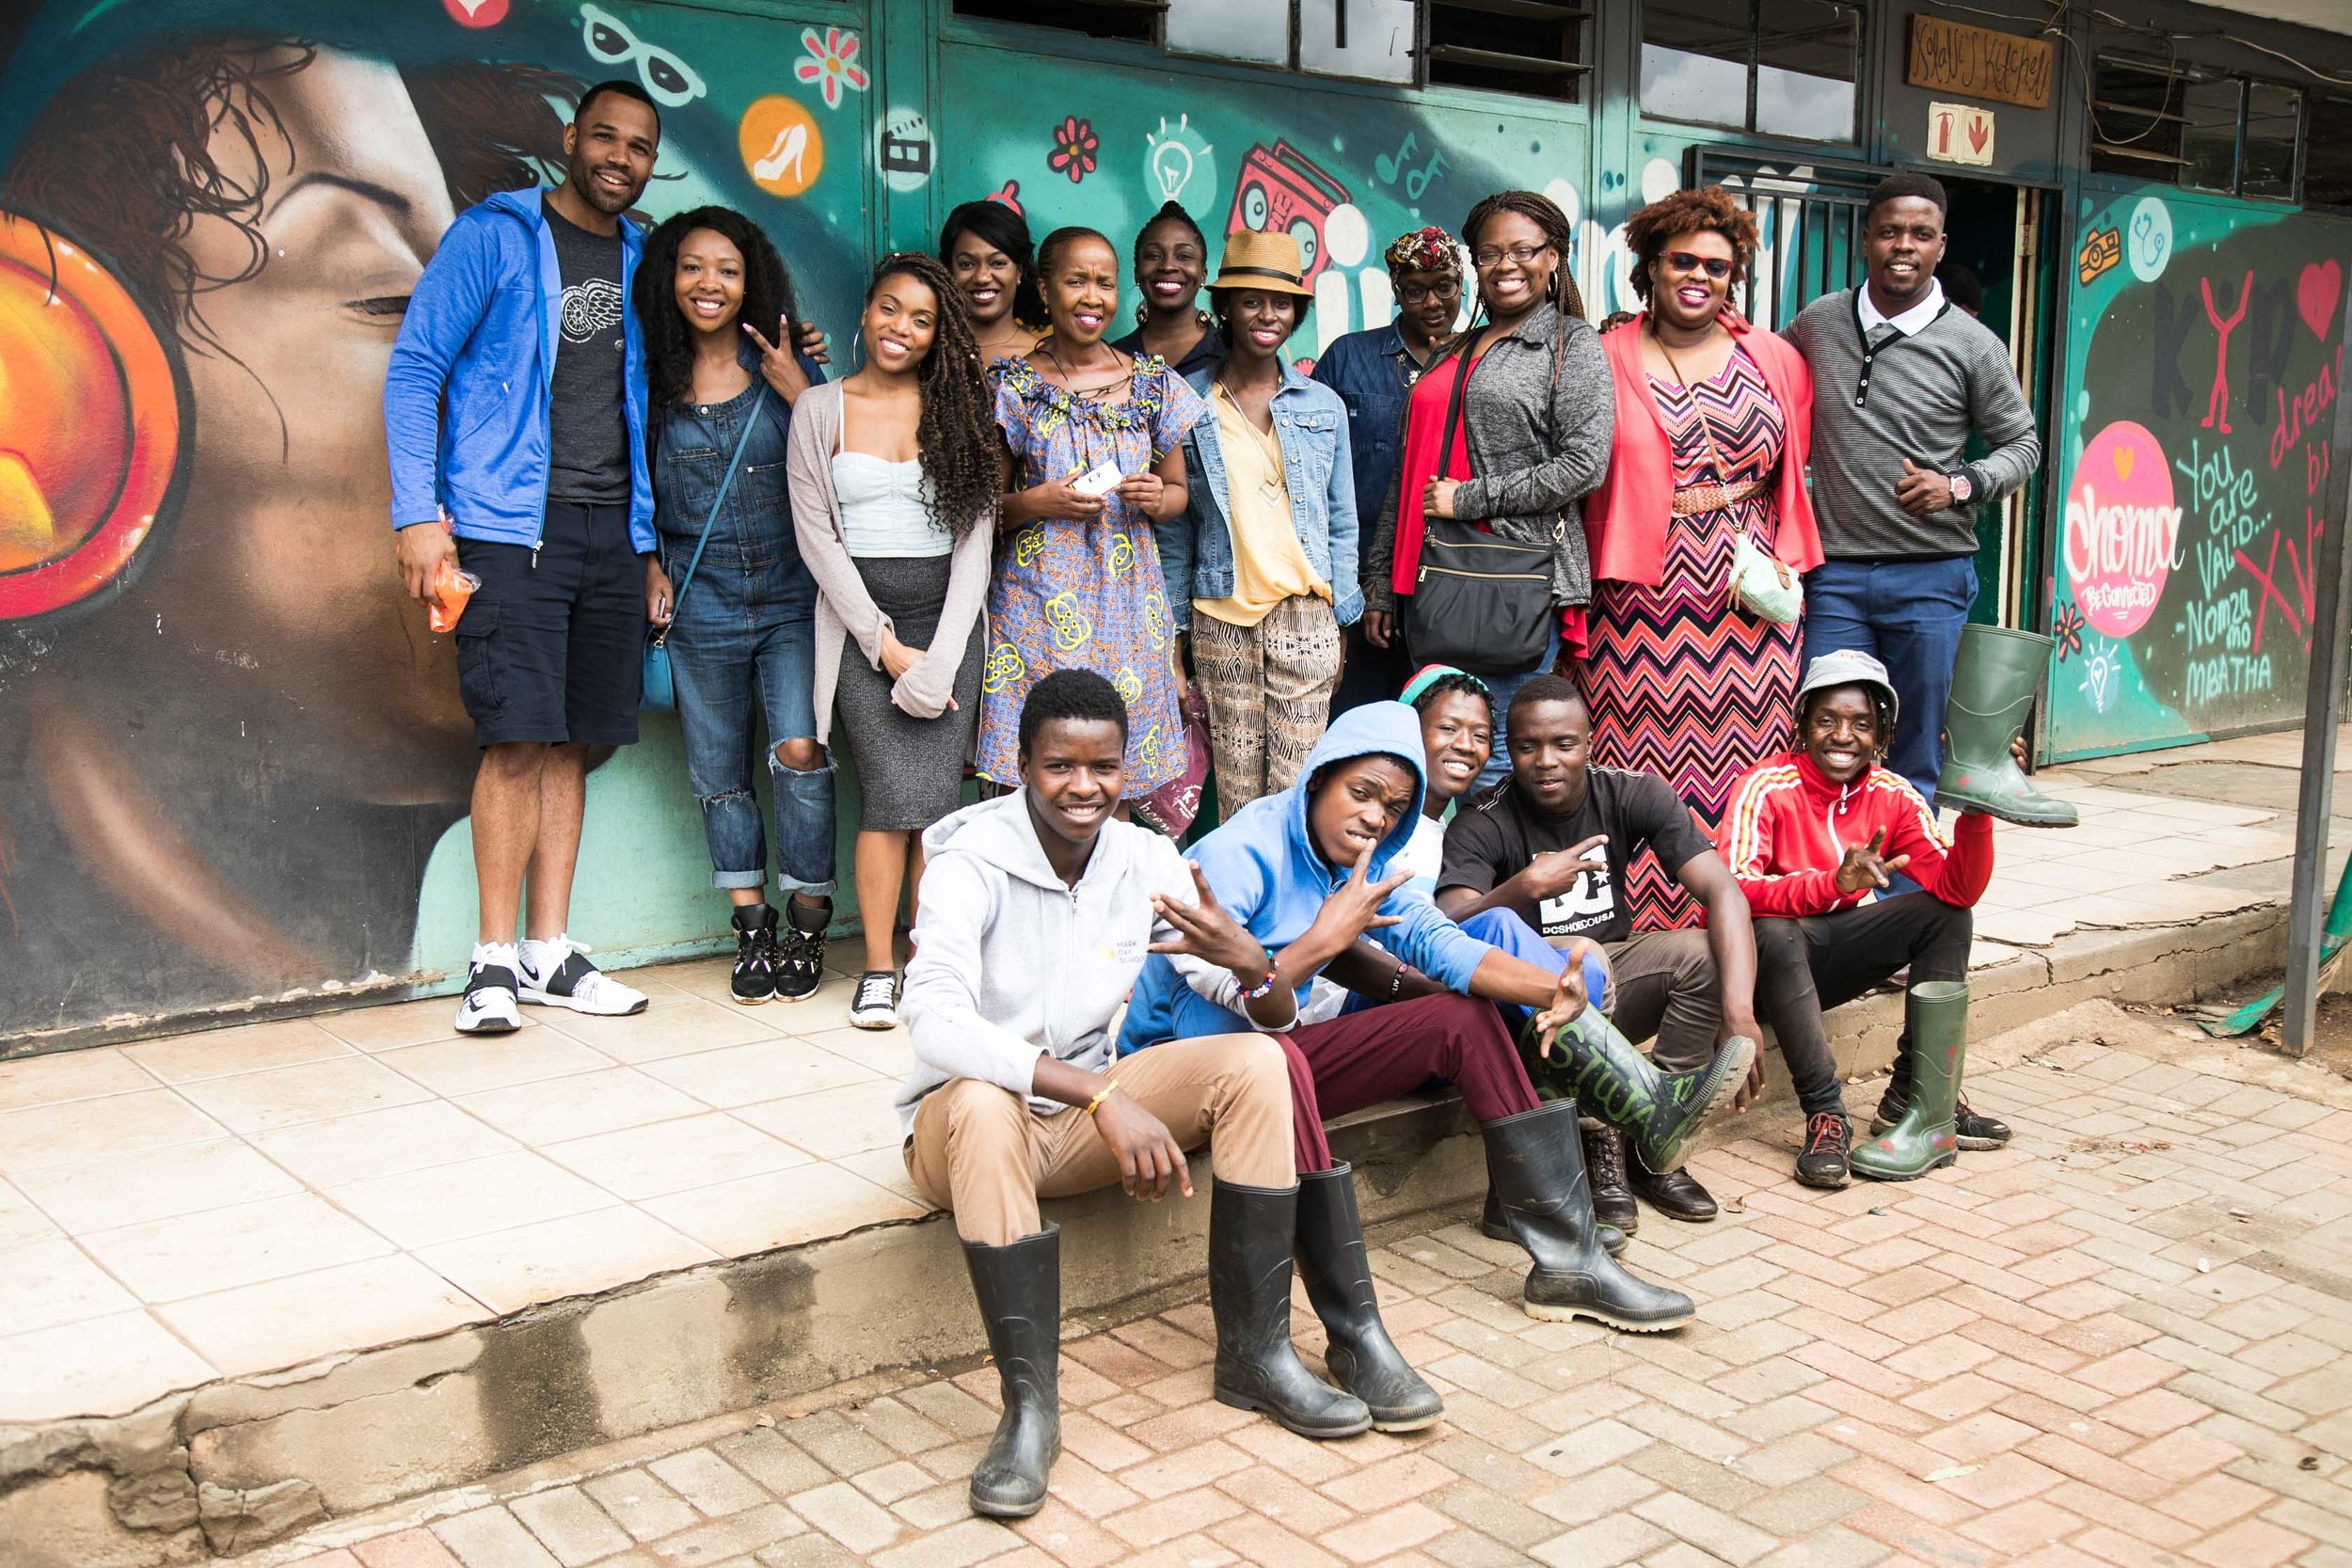 Us cheesin' with some of the amazing teens and director of Kliptown Youth Program.